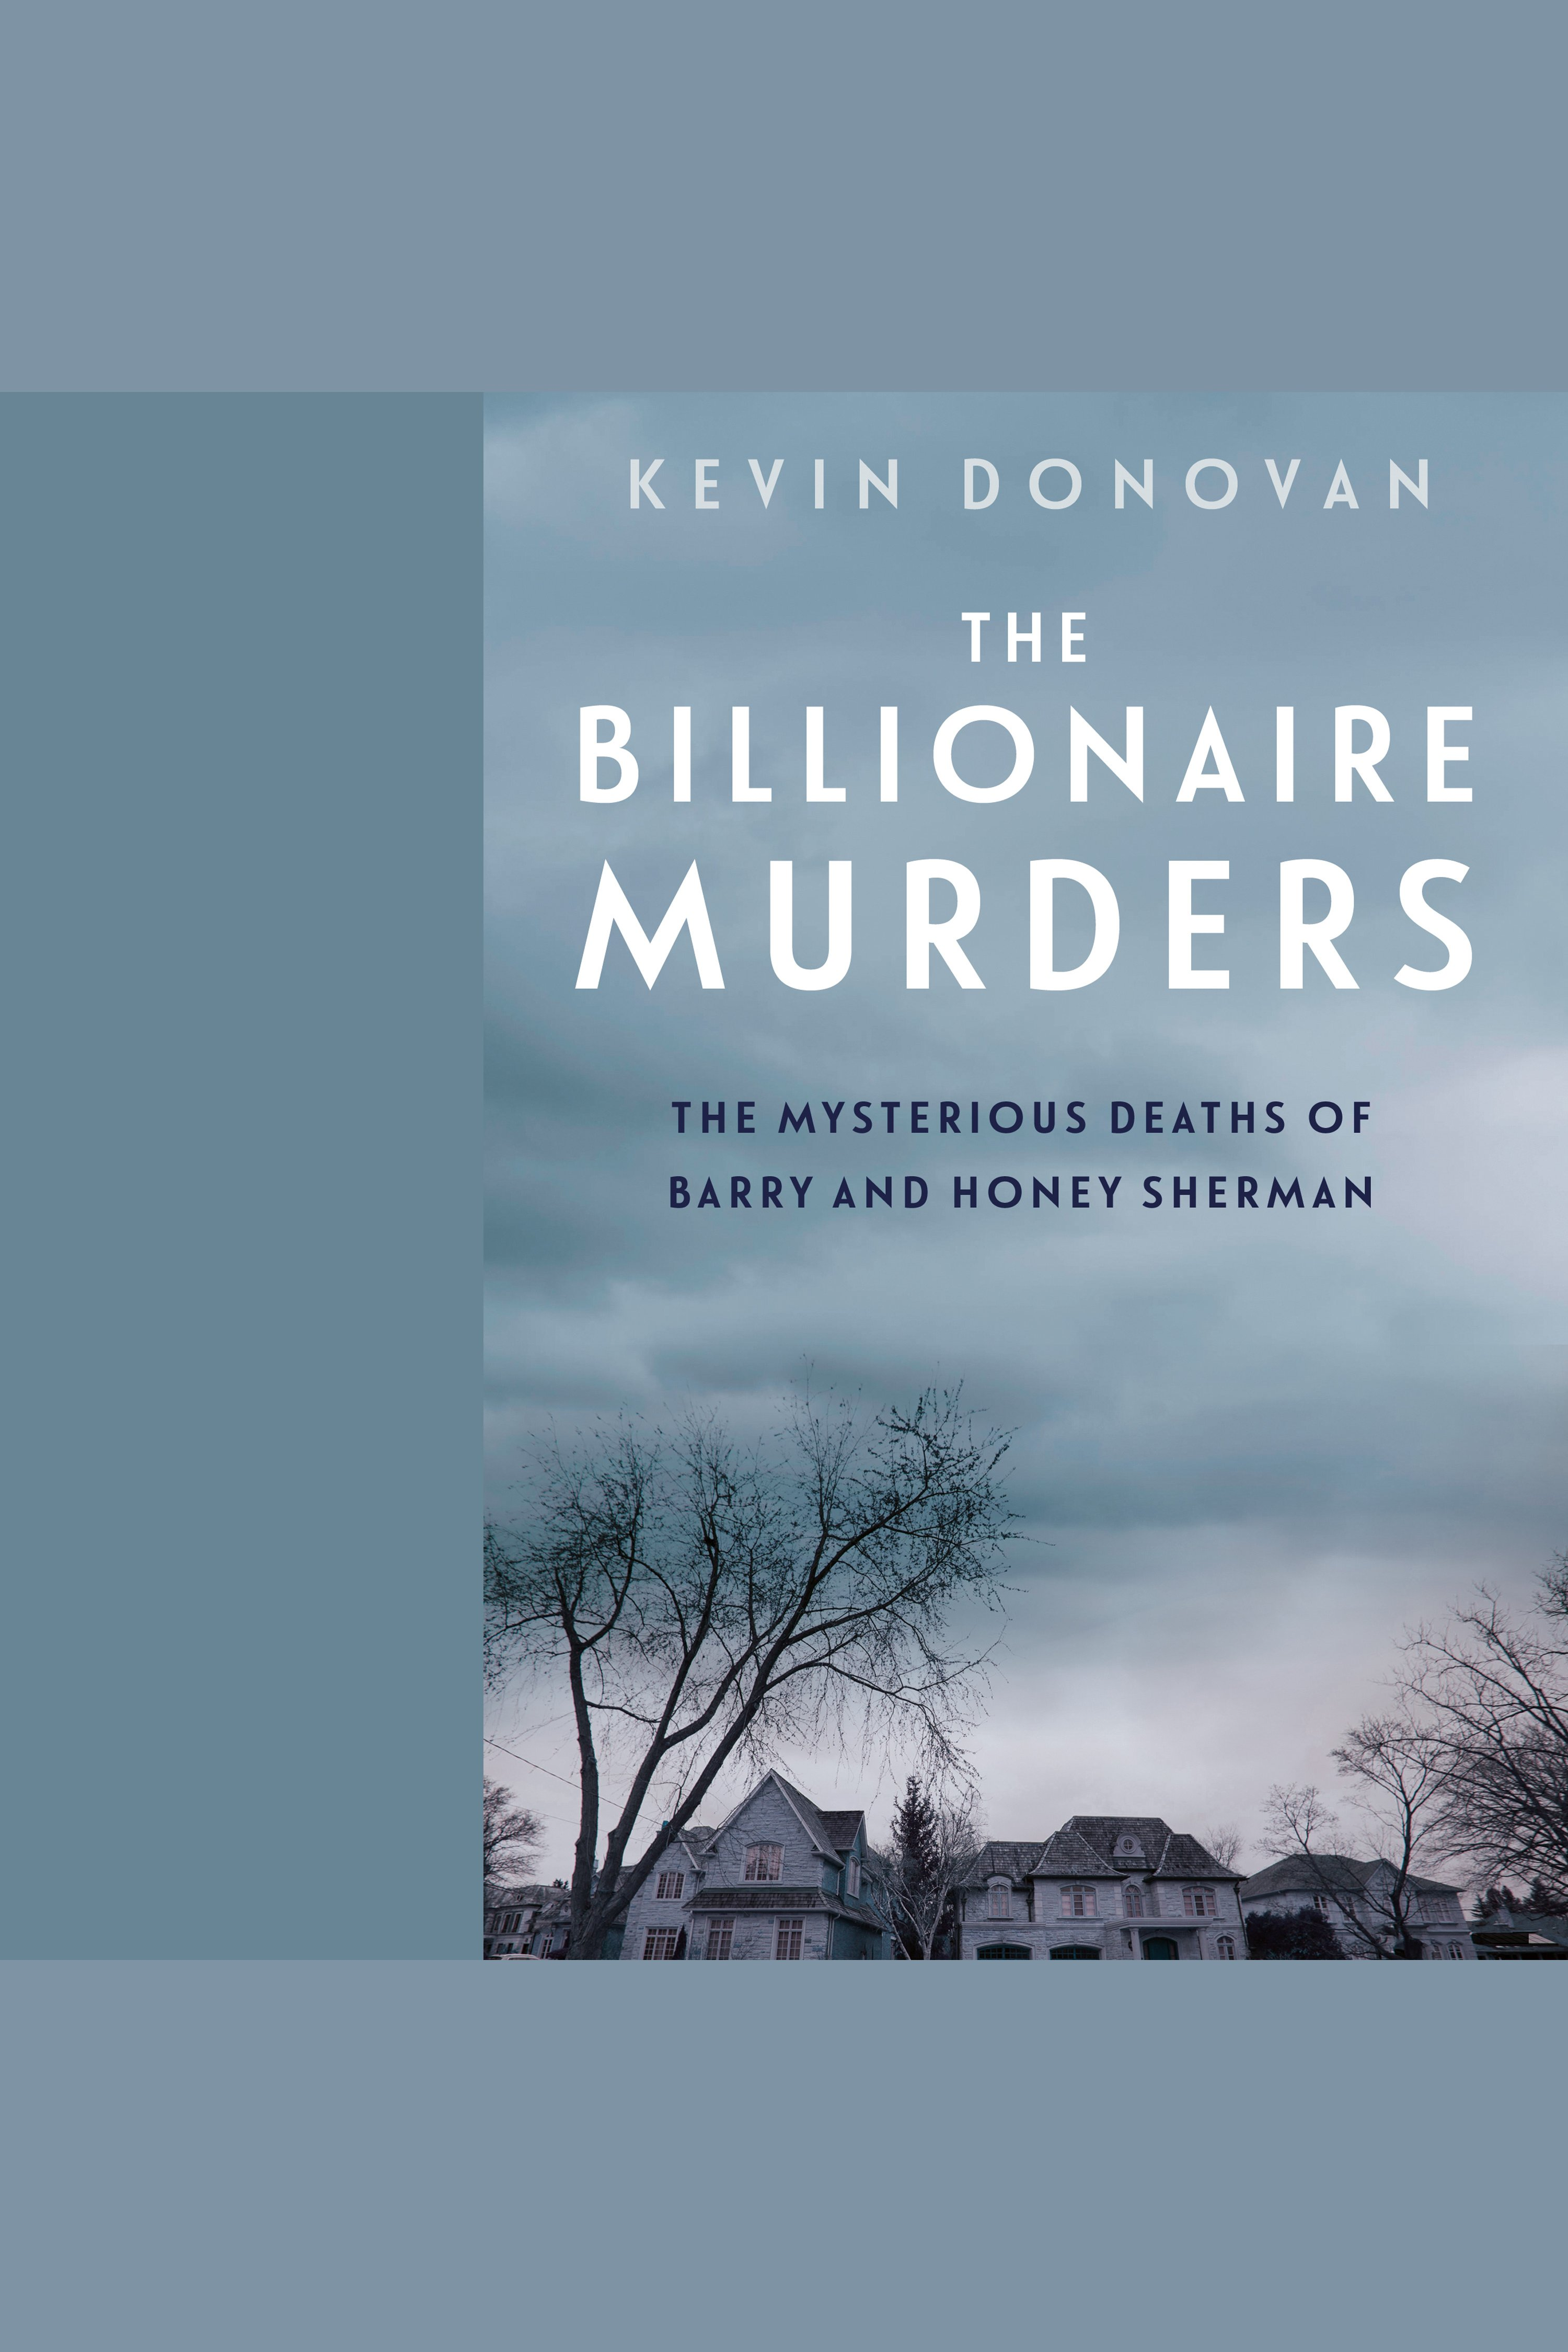 Billionaire Murders, The The Mysterious Deaths of Barry and Honey Sherman